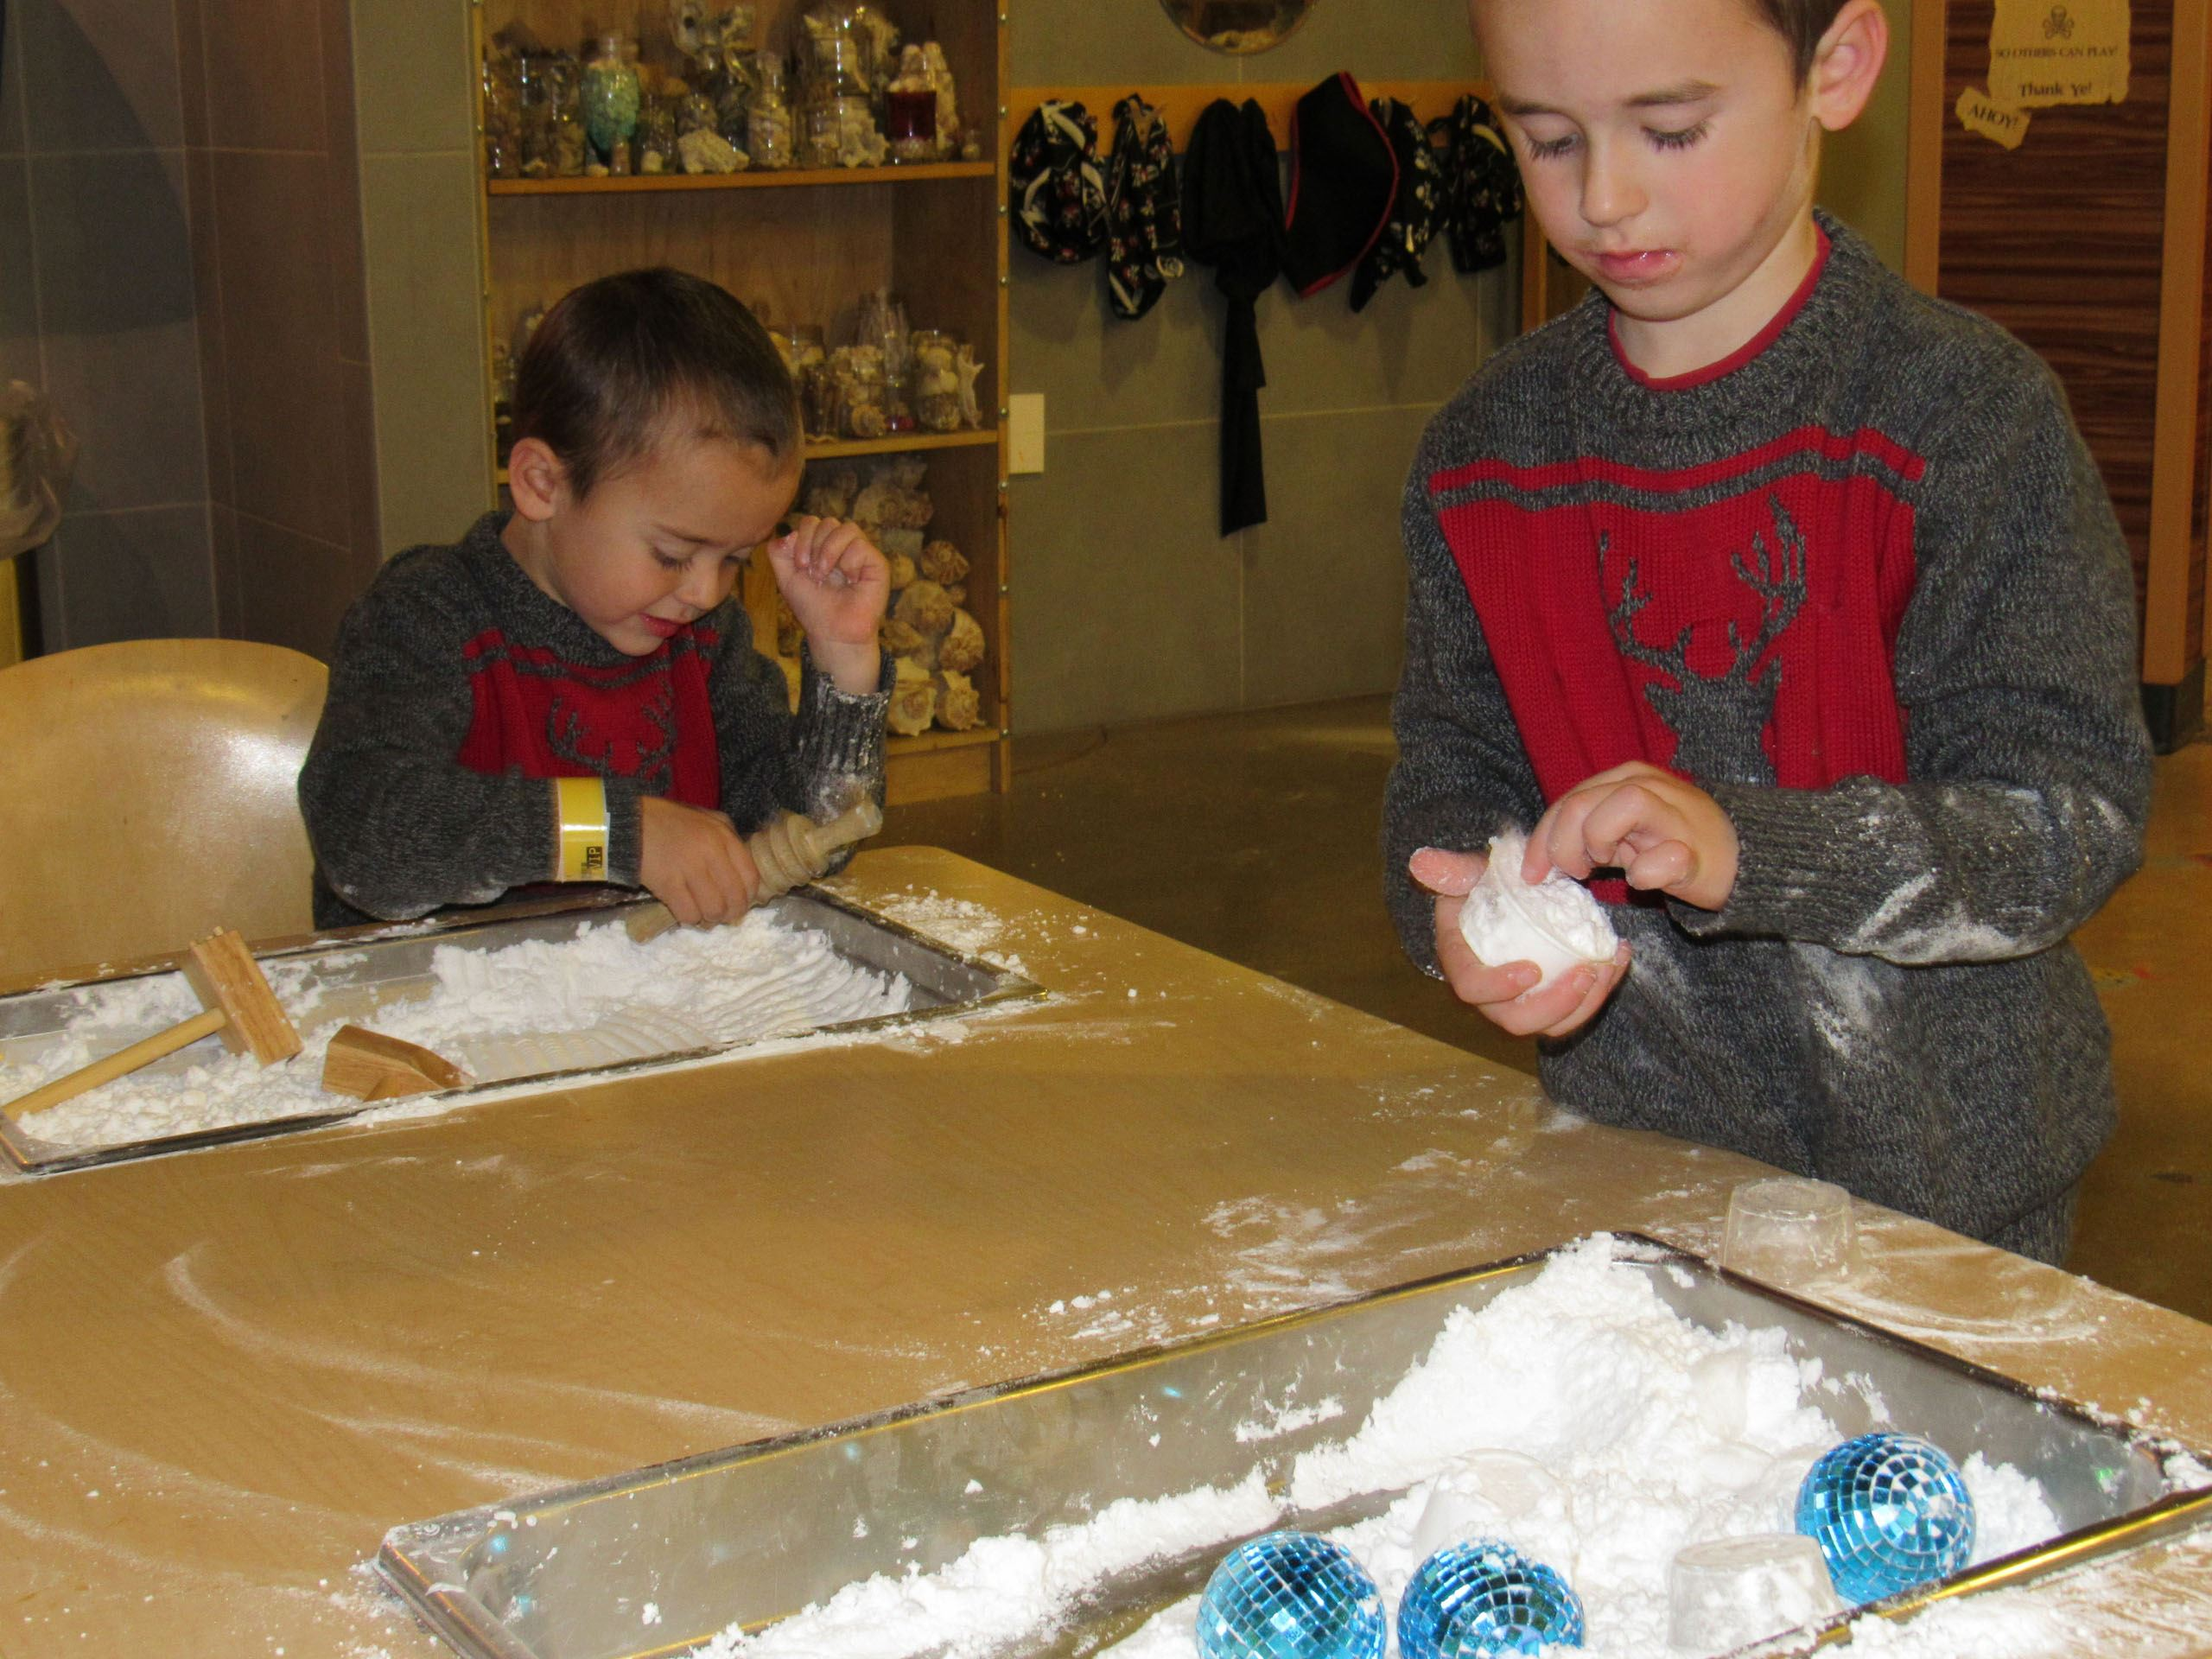 Boys playing with snow activity